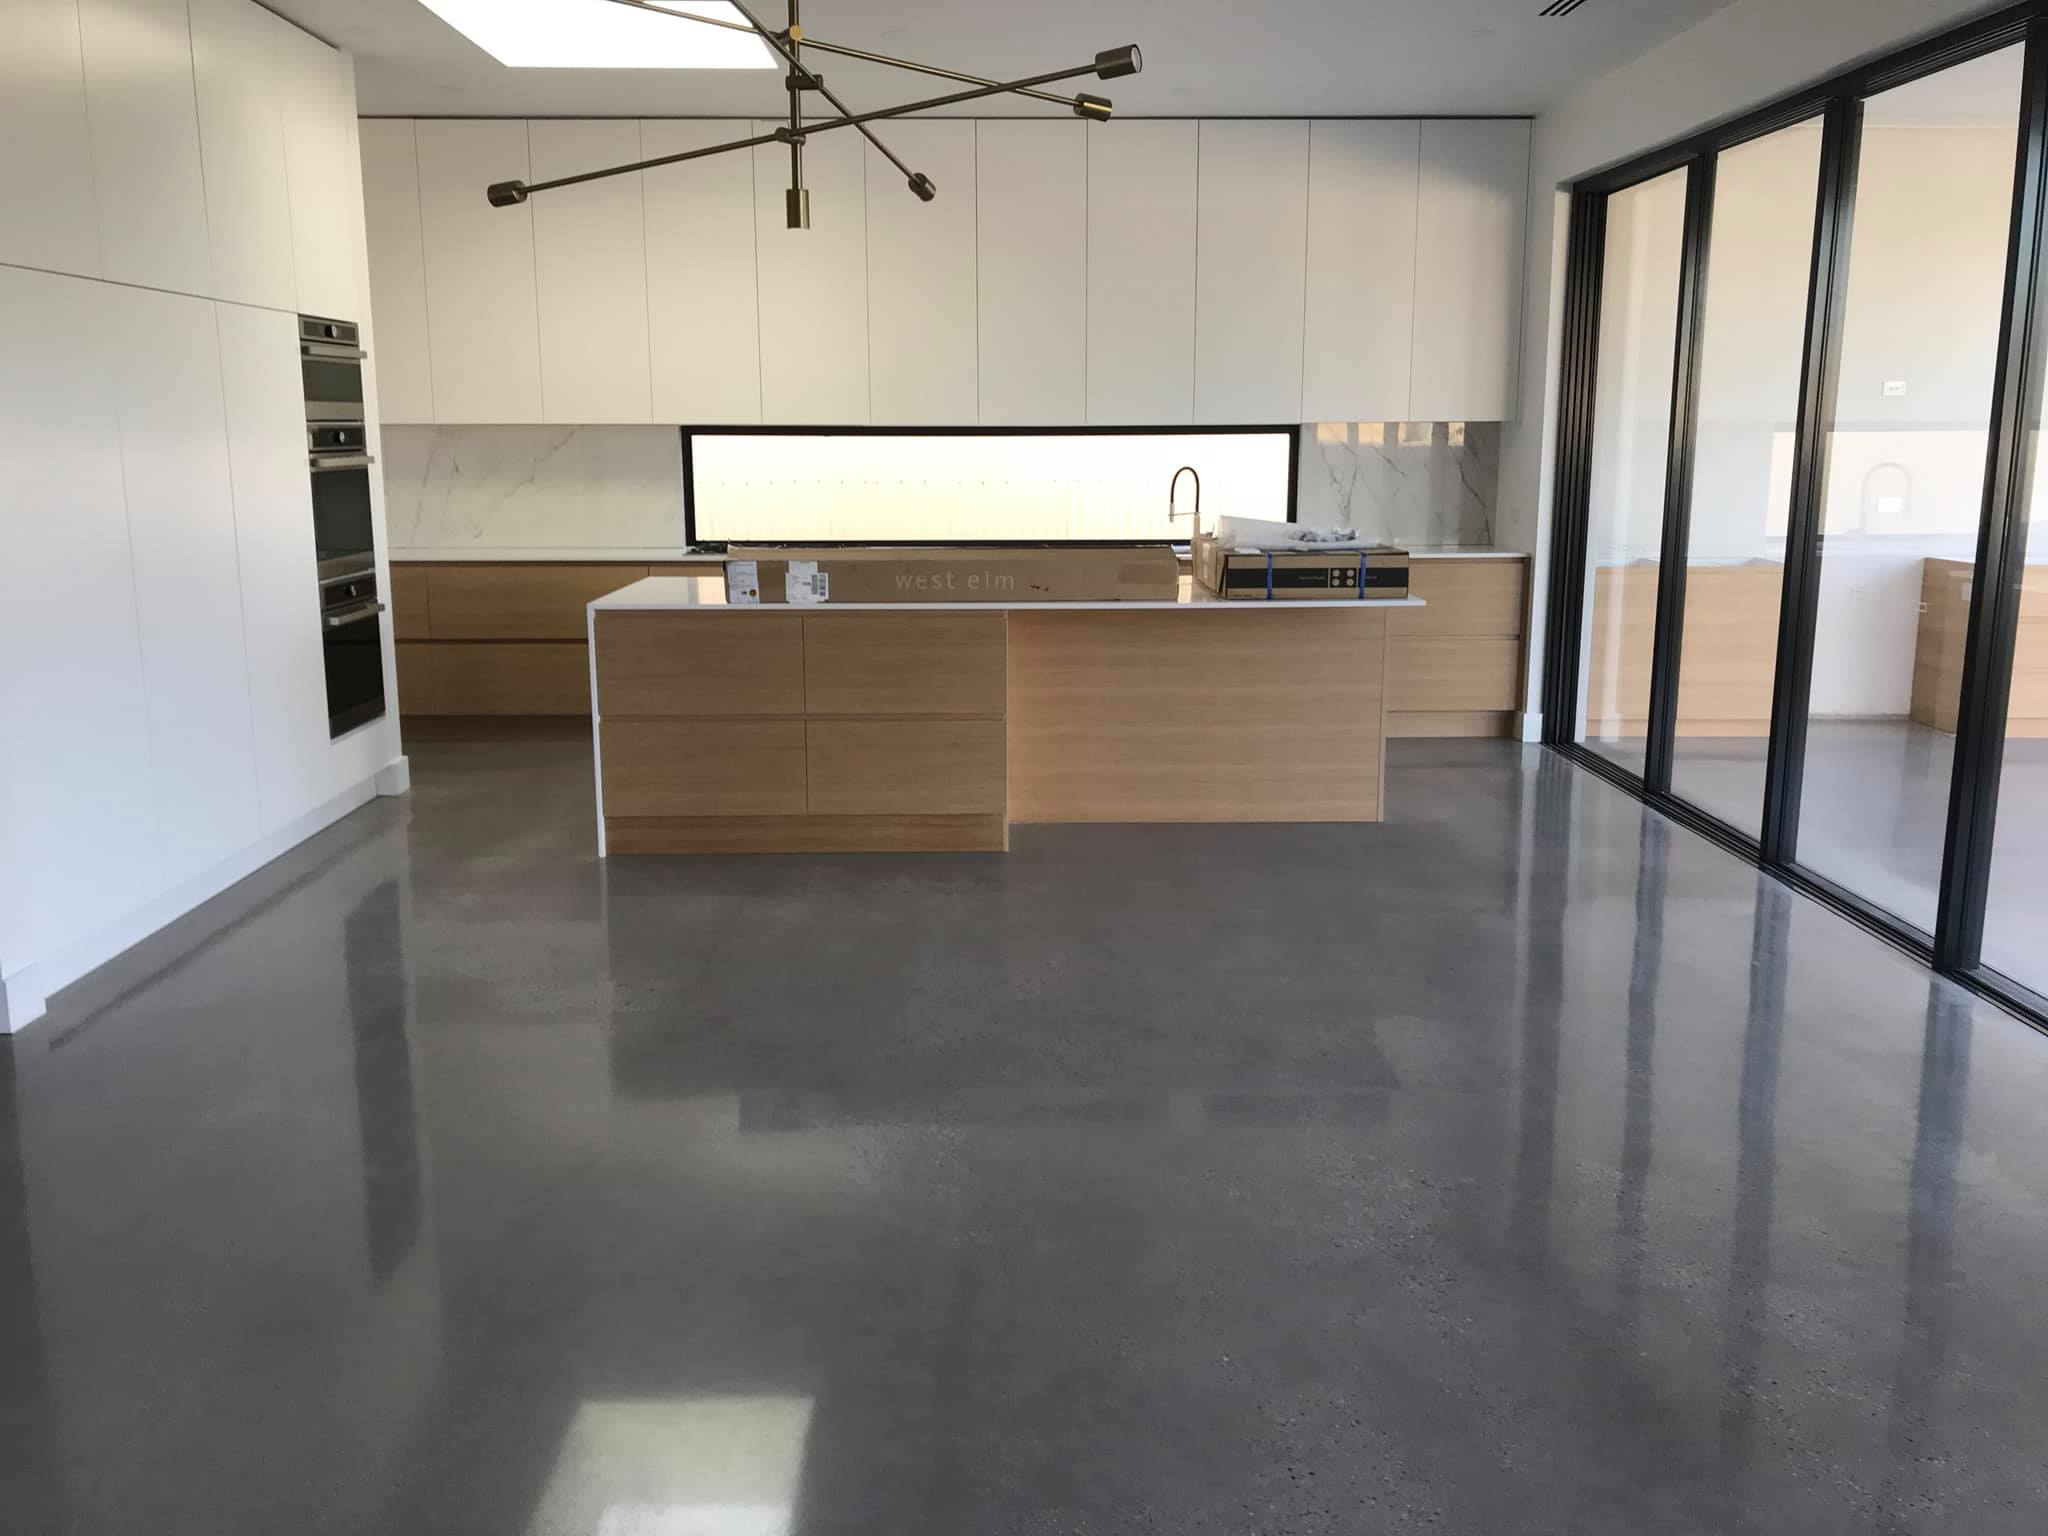 Salt & Pepper polished concrete in kitchen